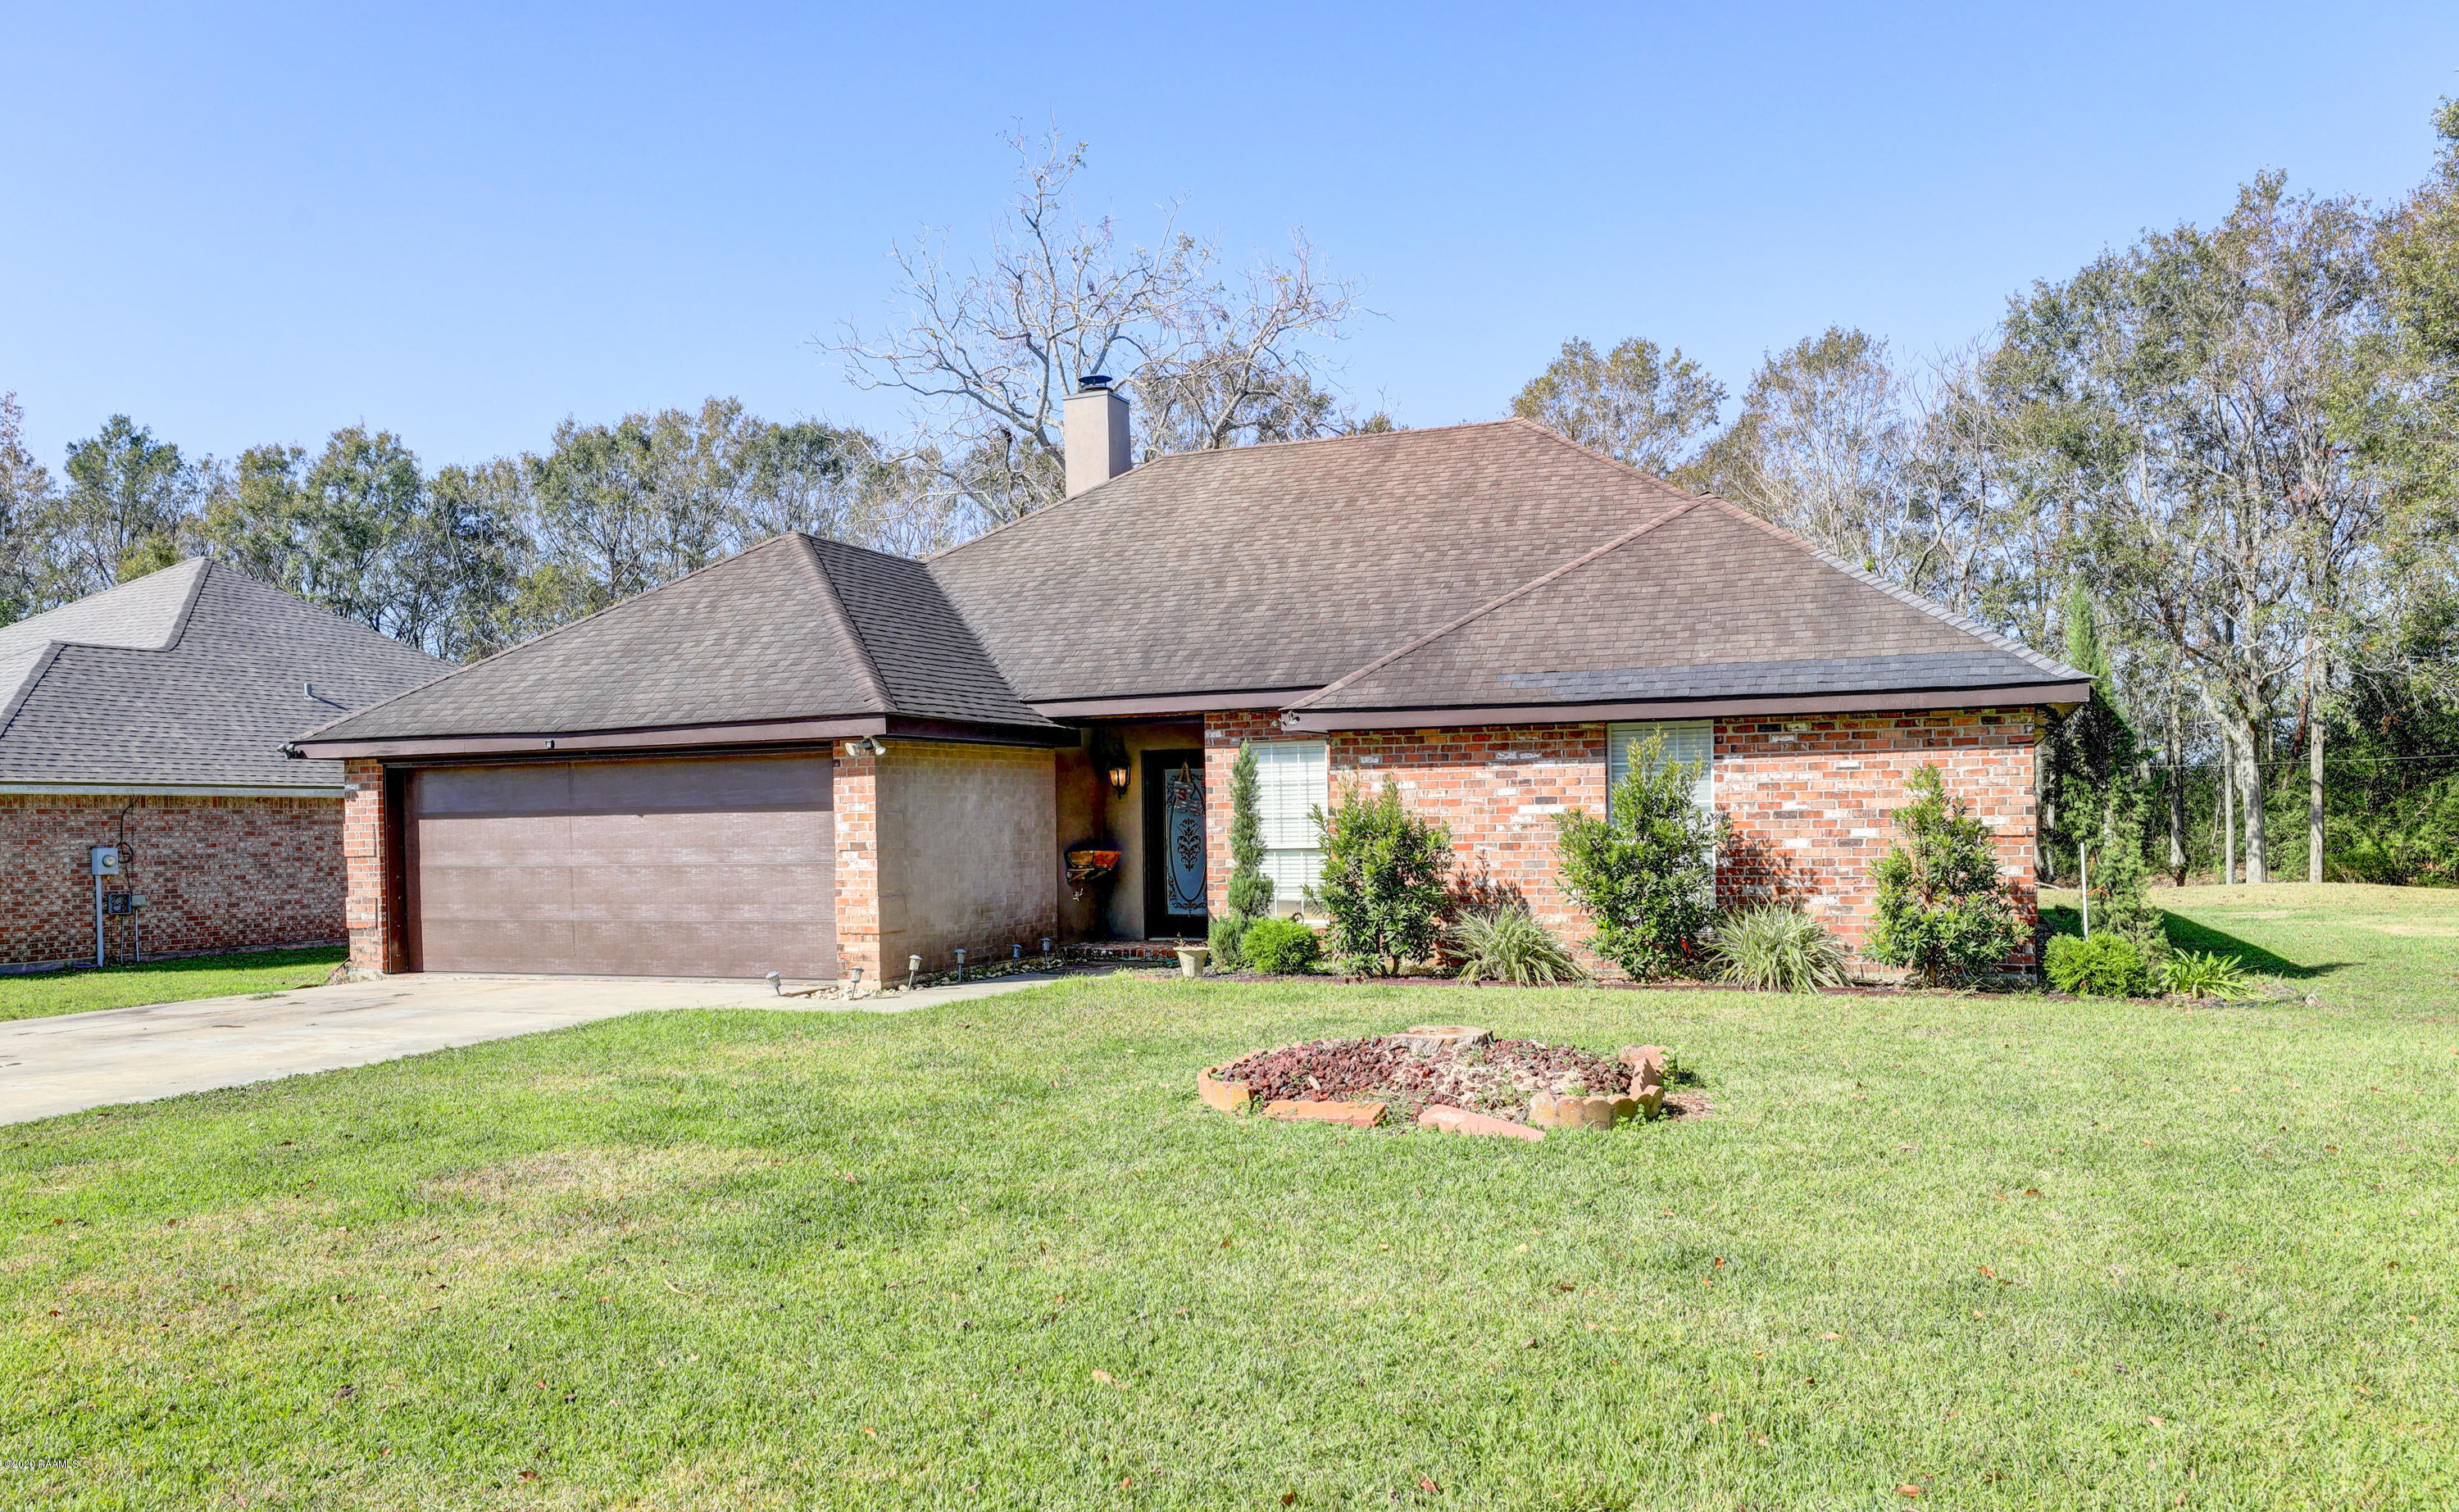 200 Olive Branch Drive, Youngsville, LA 70592 Photo #2